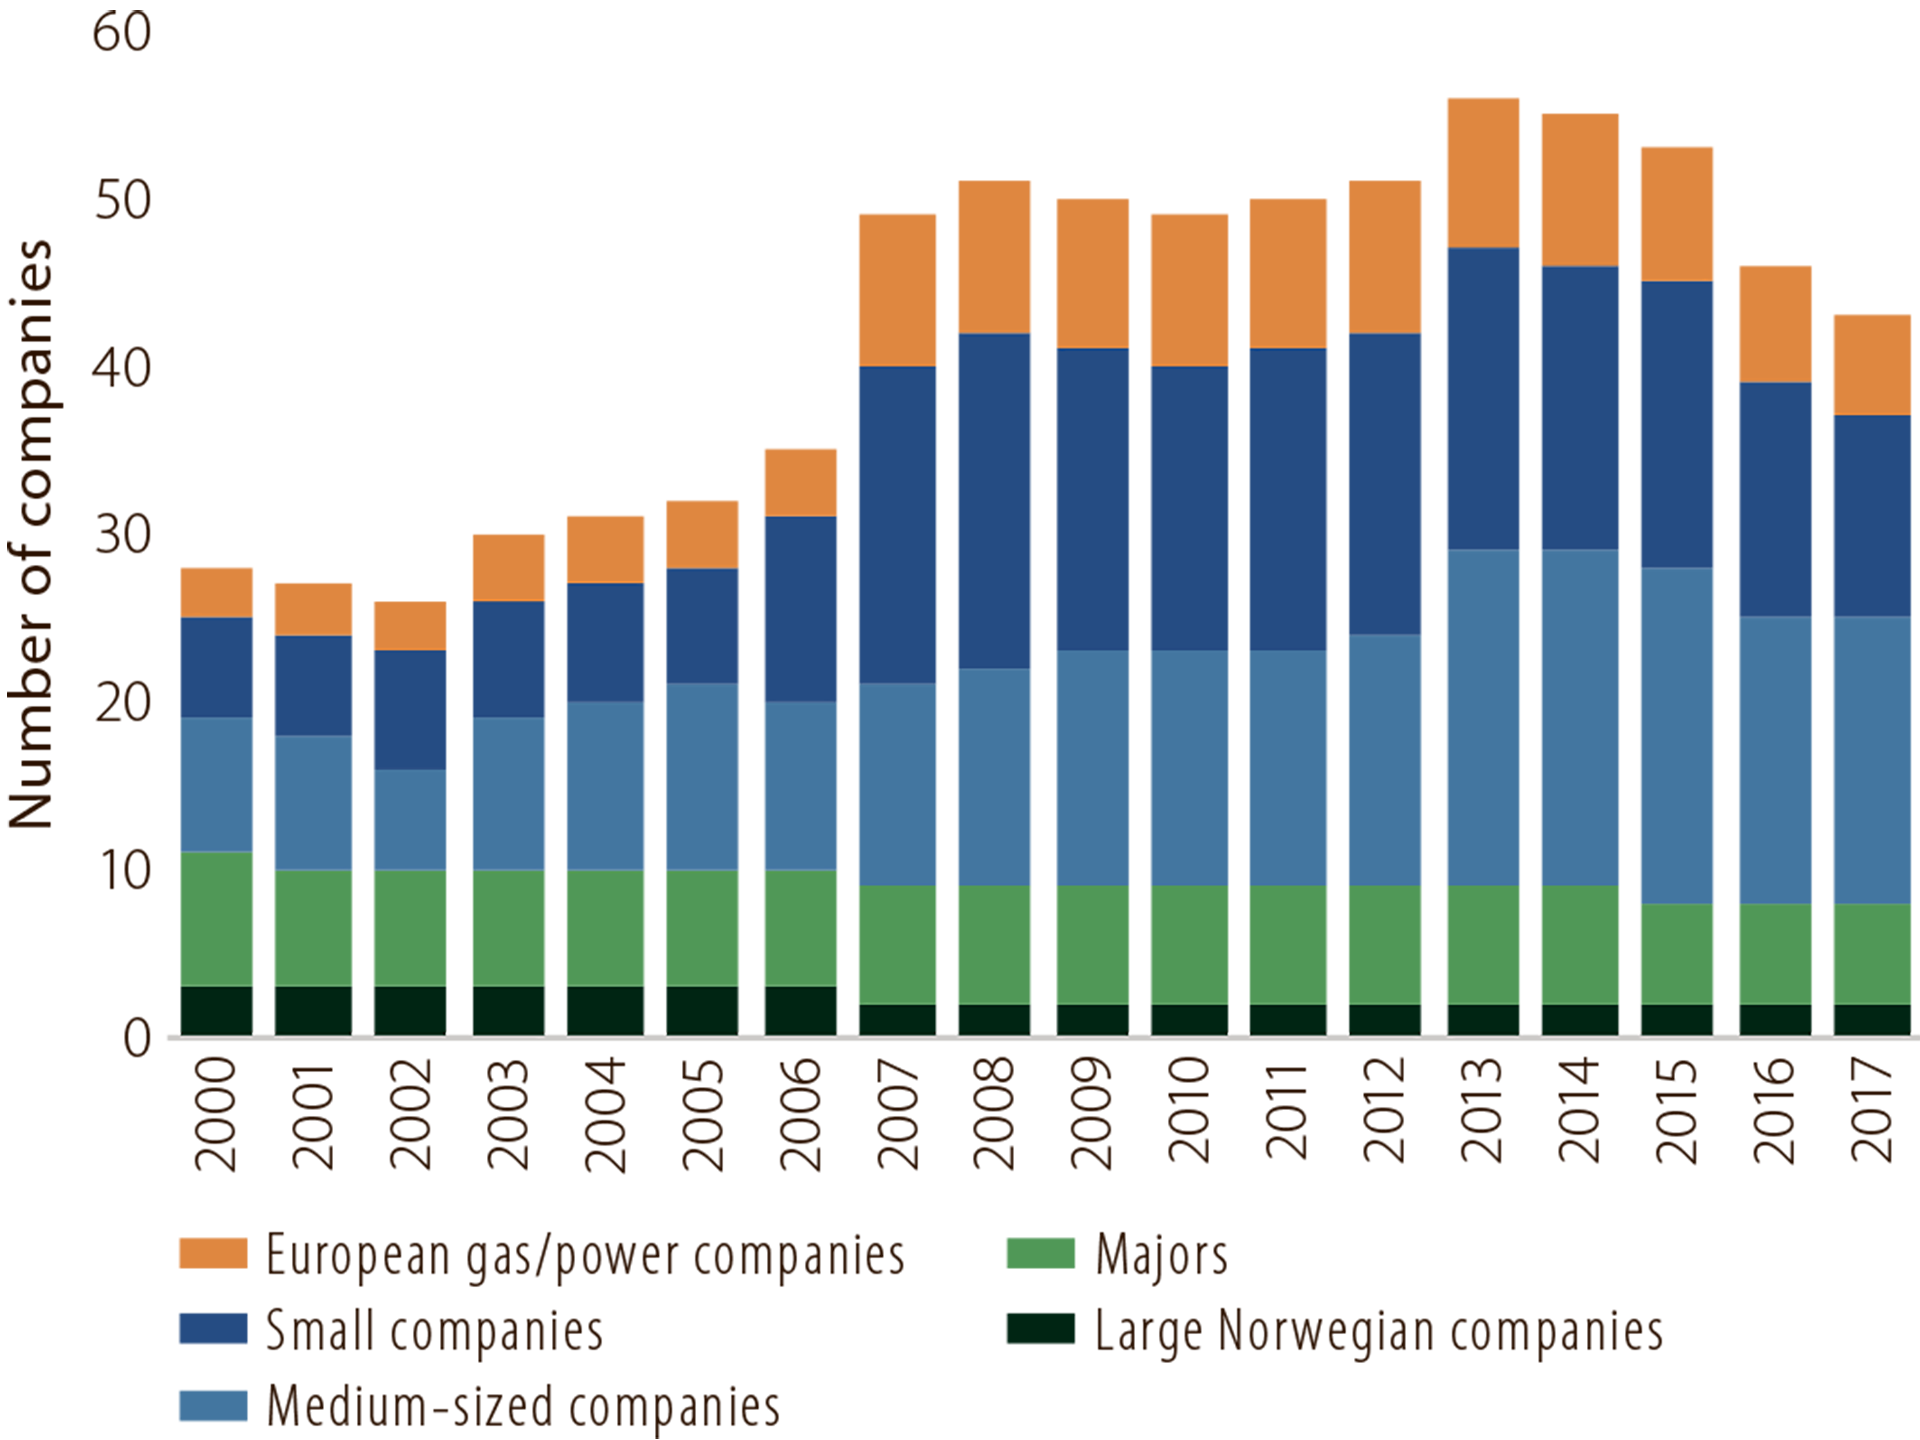 Figure 5.1 Companies on the NCS, 2000-17.